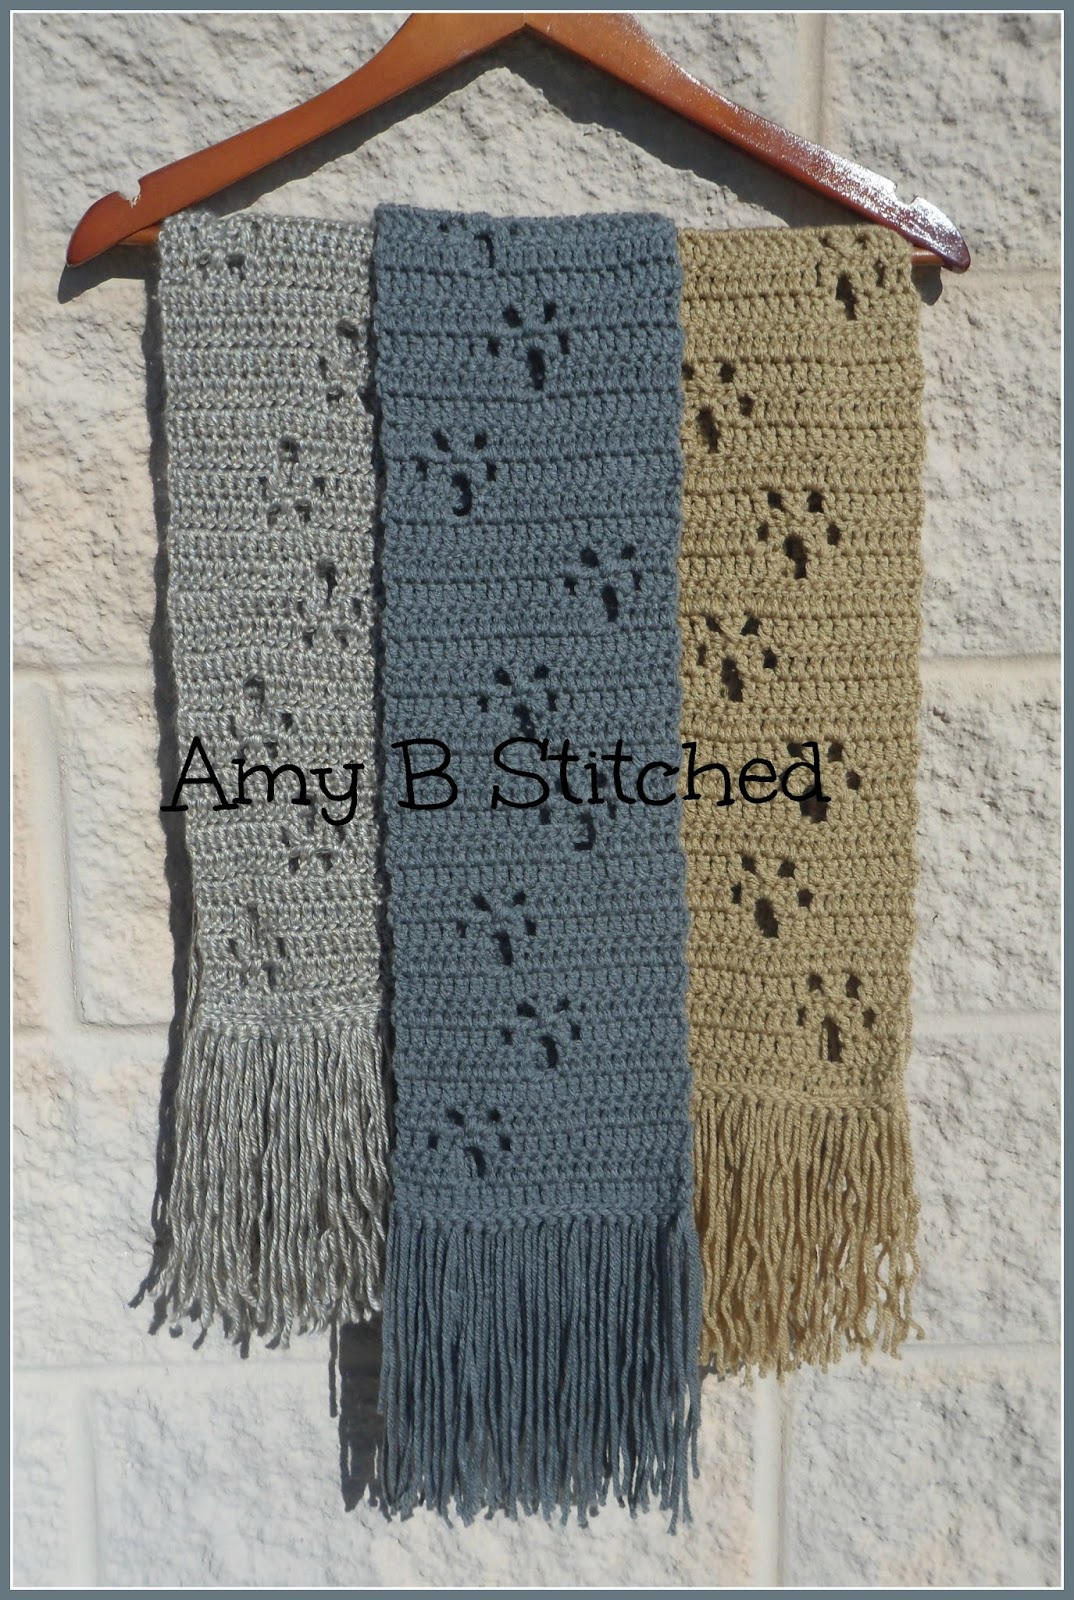 Free Crochet Pattern For Paw Print : A Stitch At A Time for Amy B Stitched: Meandering Paw ...